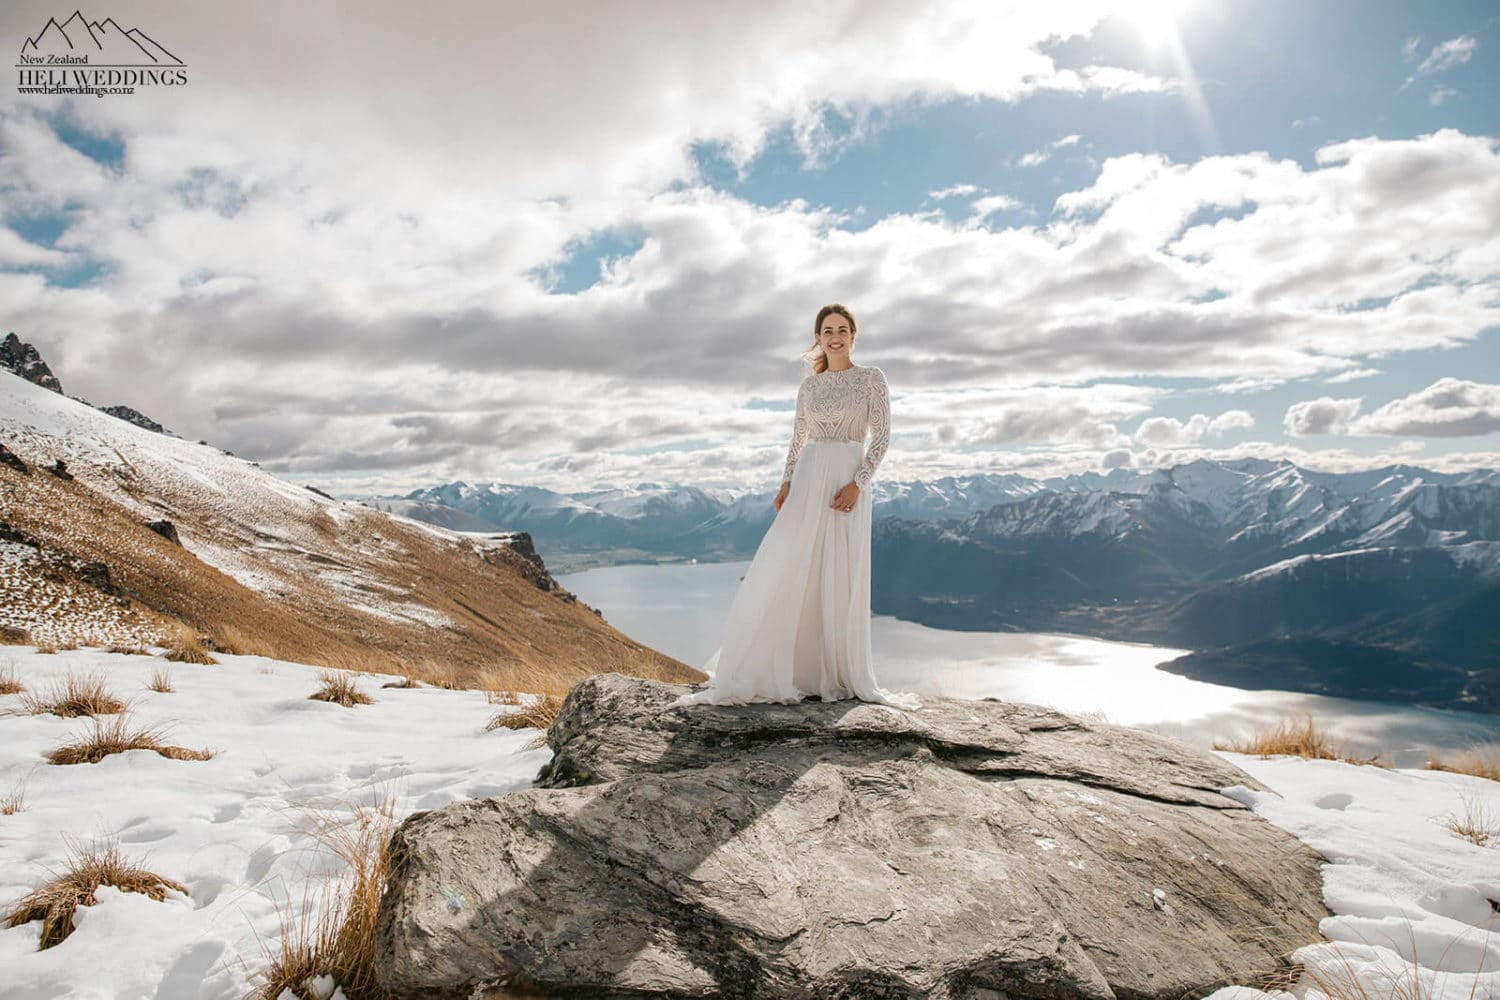 Queenstown Helicopter wedding in the snow